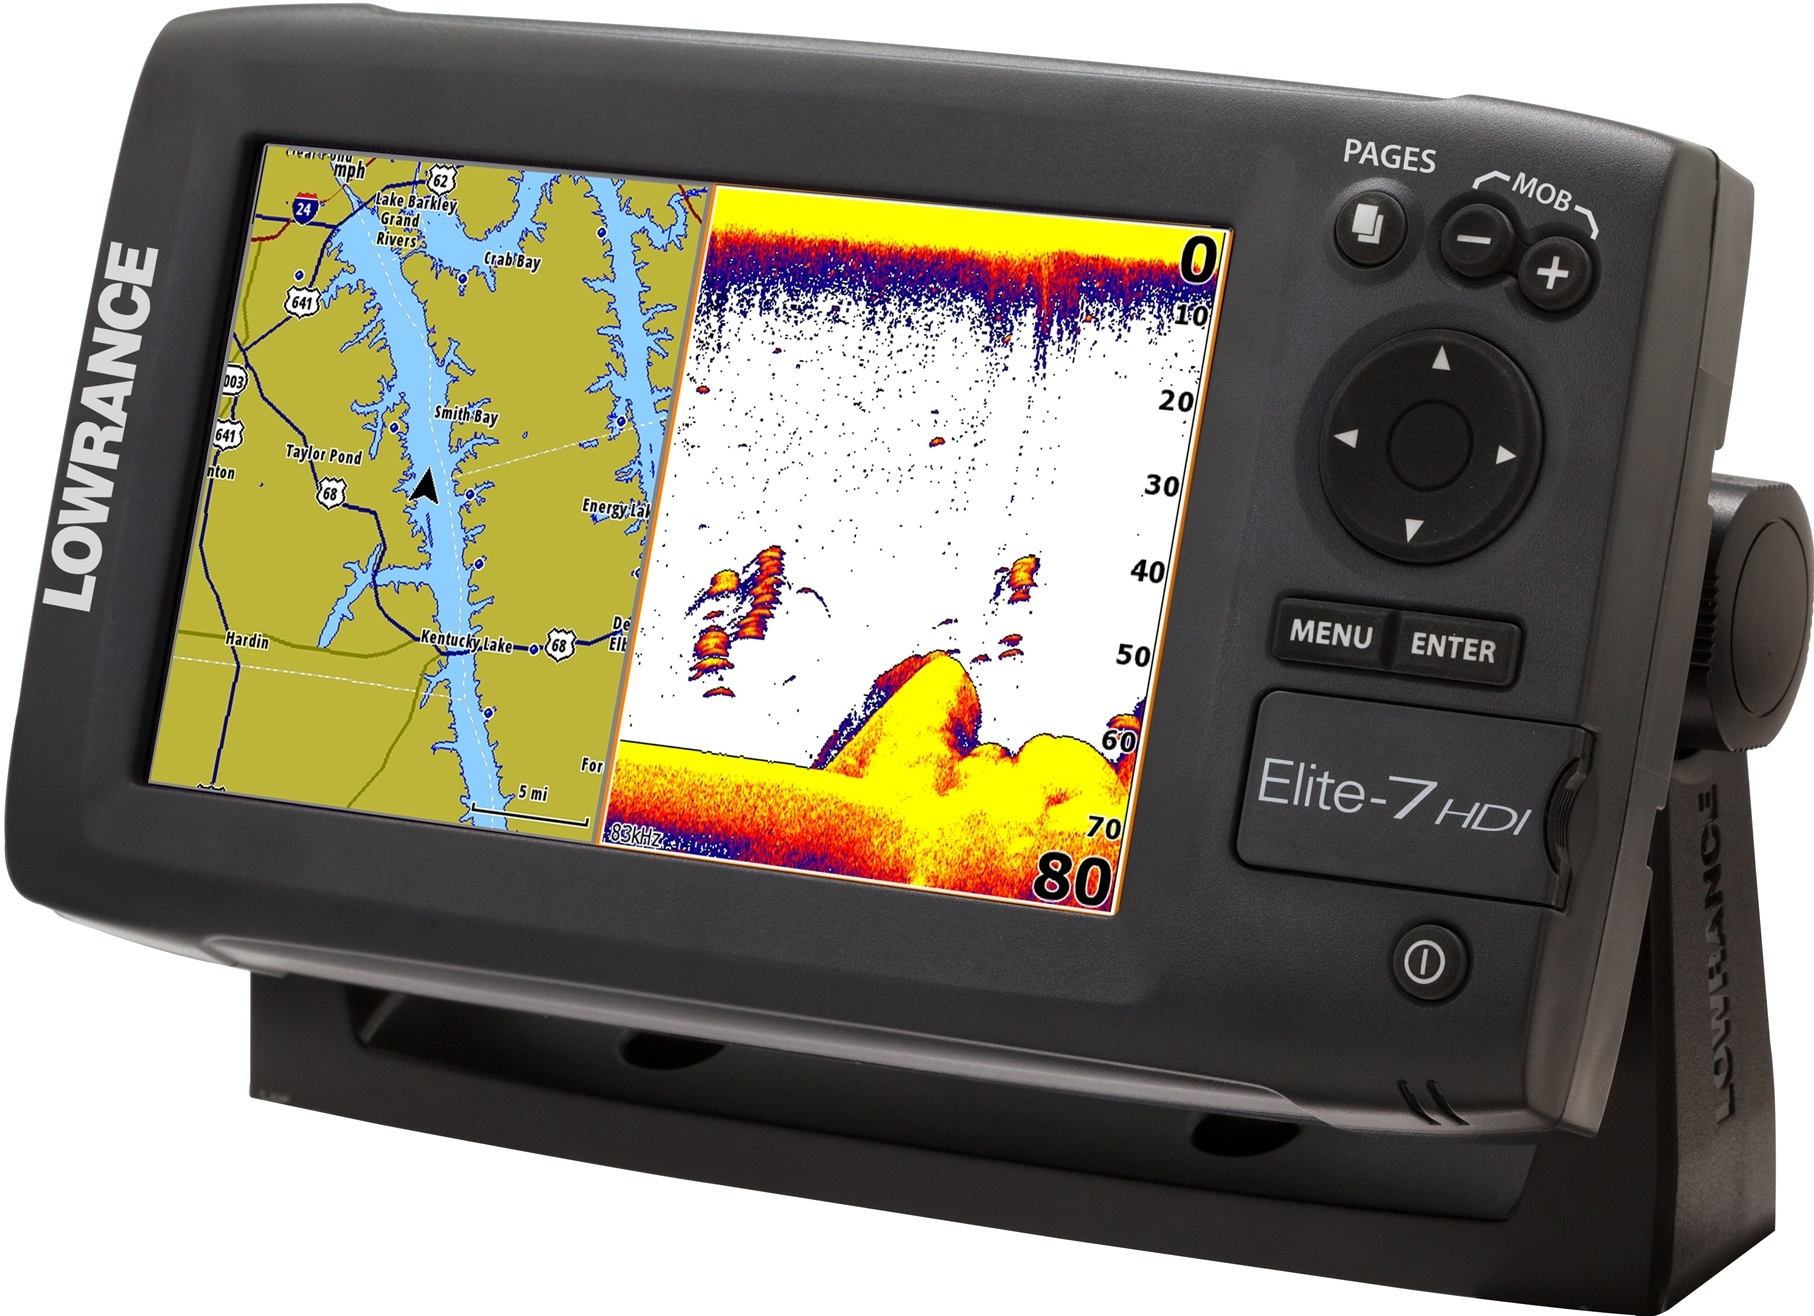 lowrance elite 7 hdi review fish finder guy